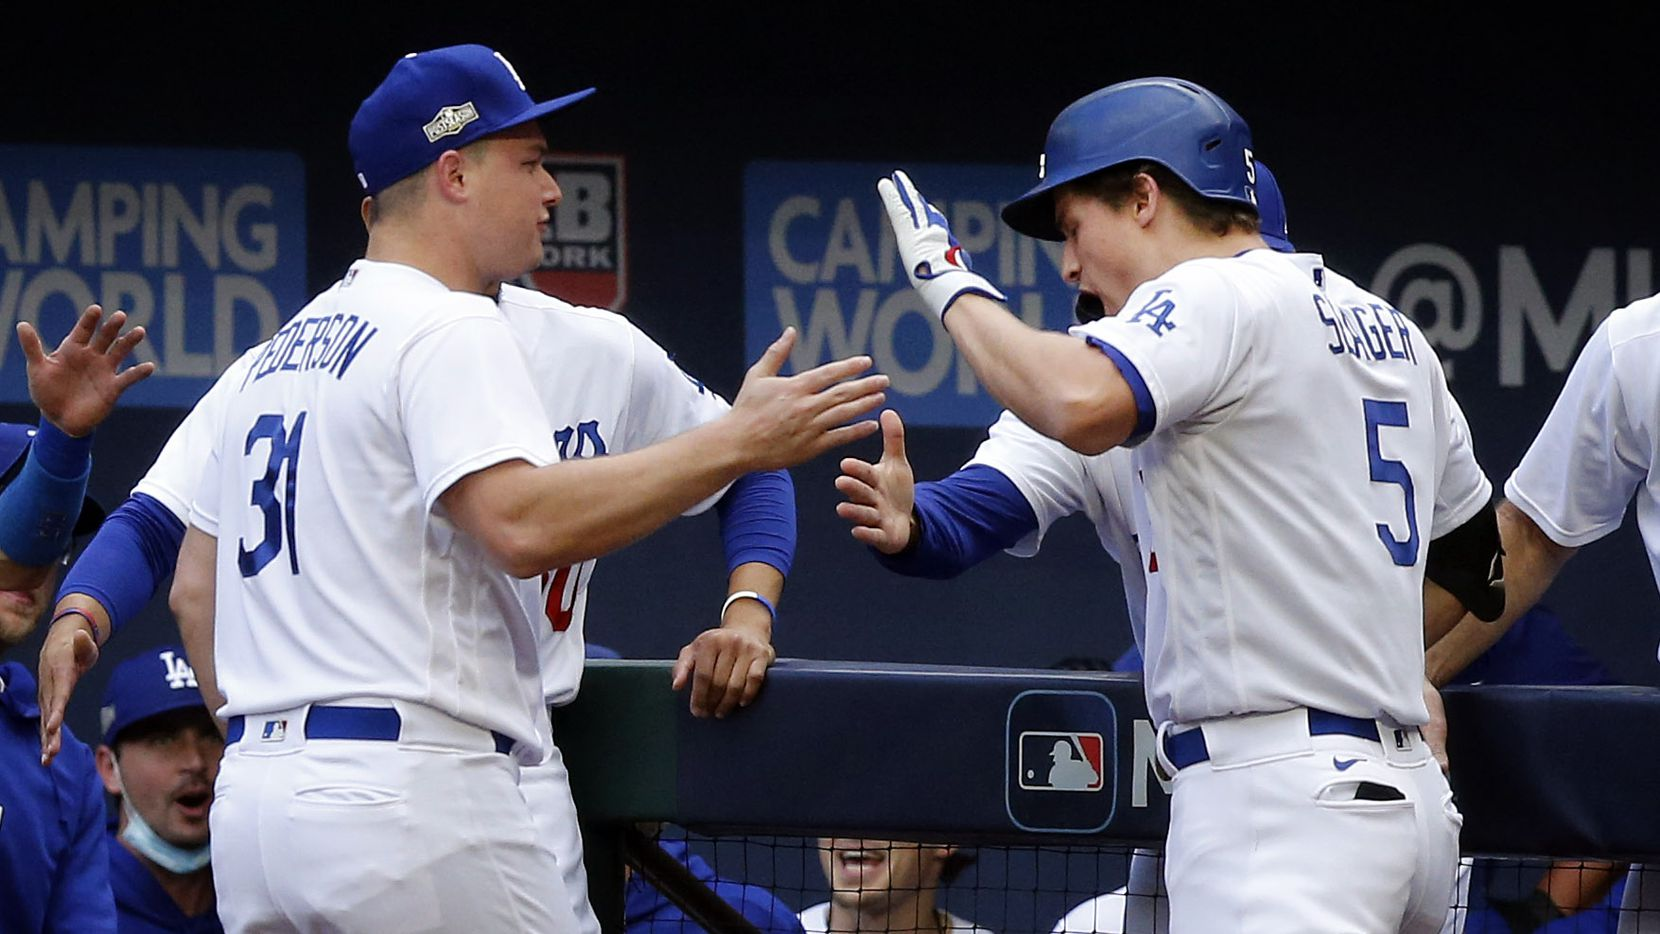 Los Angeles Dodgers shortstop Corey Seager (5)  is congratulated on his first inning solo home run by teammate Joc Pederson (31) in Game 6 of the National League Championship Series at Globe Life Field in Arlington, Saturday, October 17, 2020.